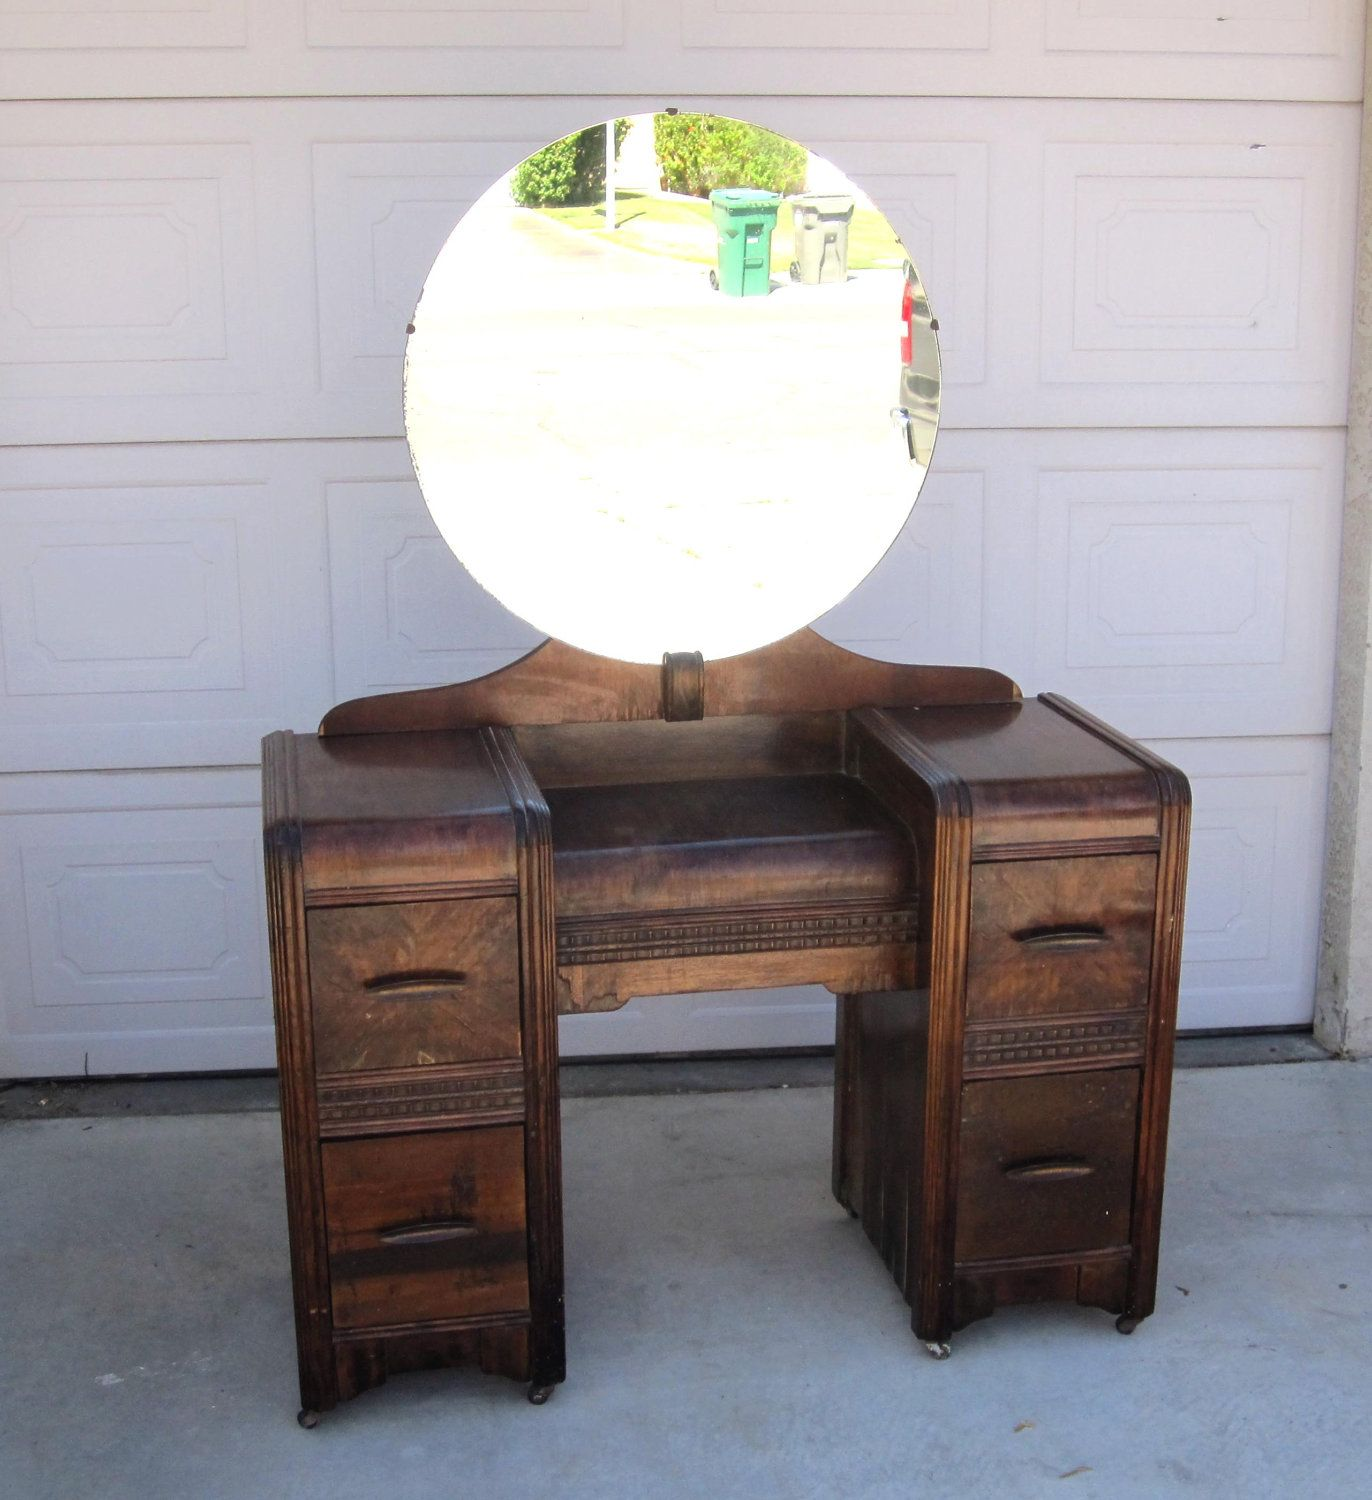 Reserved For Stacey Byham Vintage 1930s Art Deco Vanity